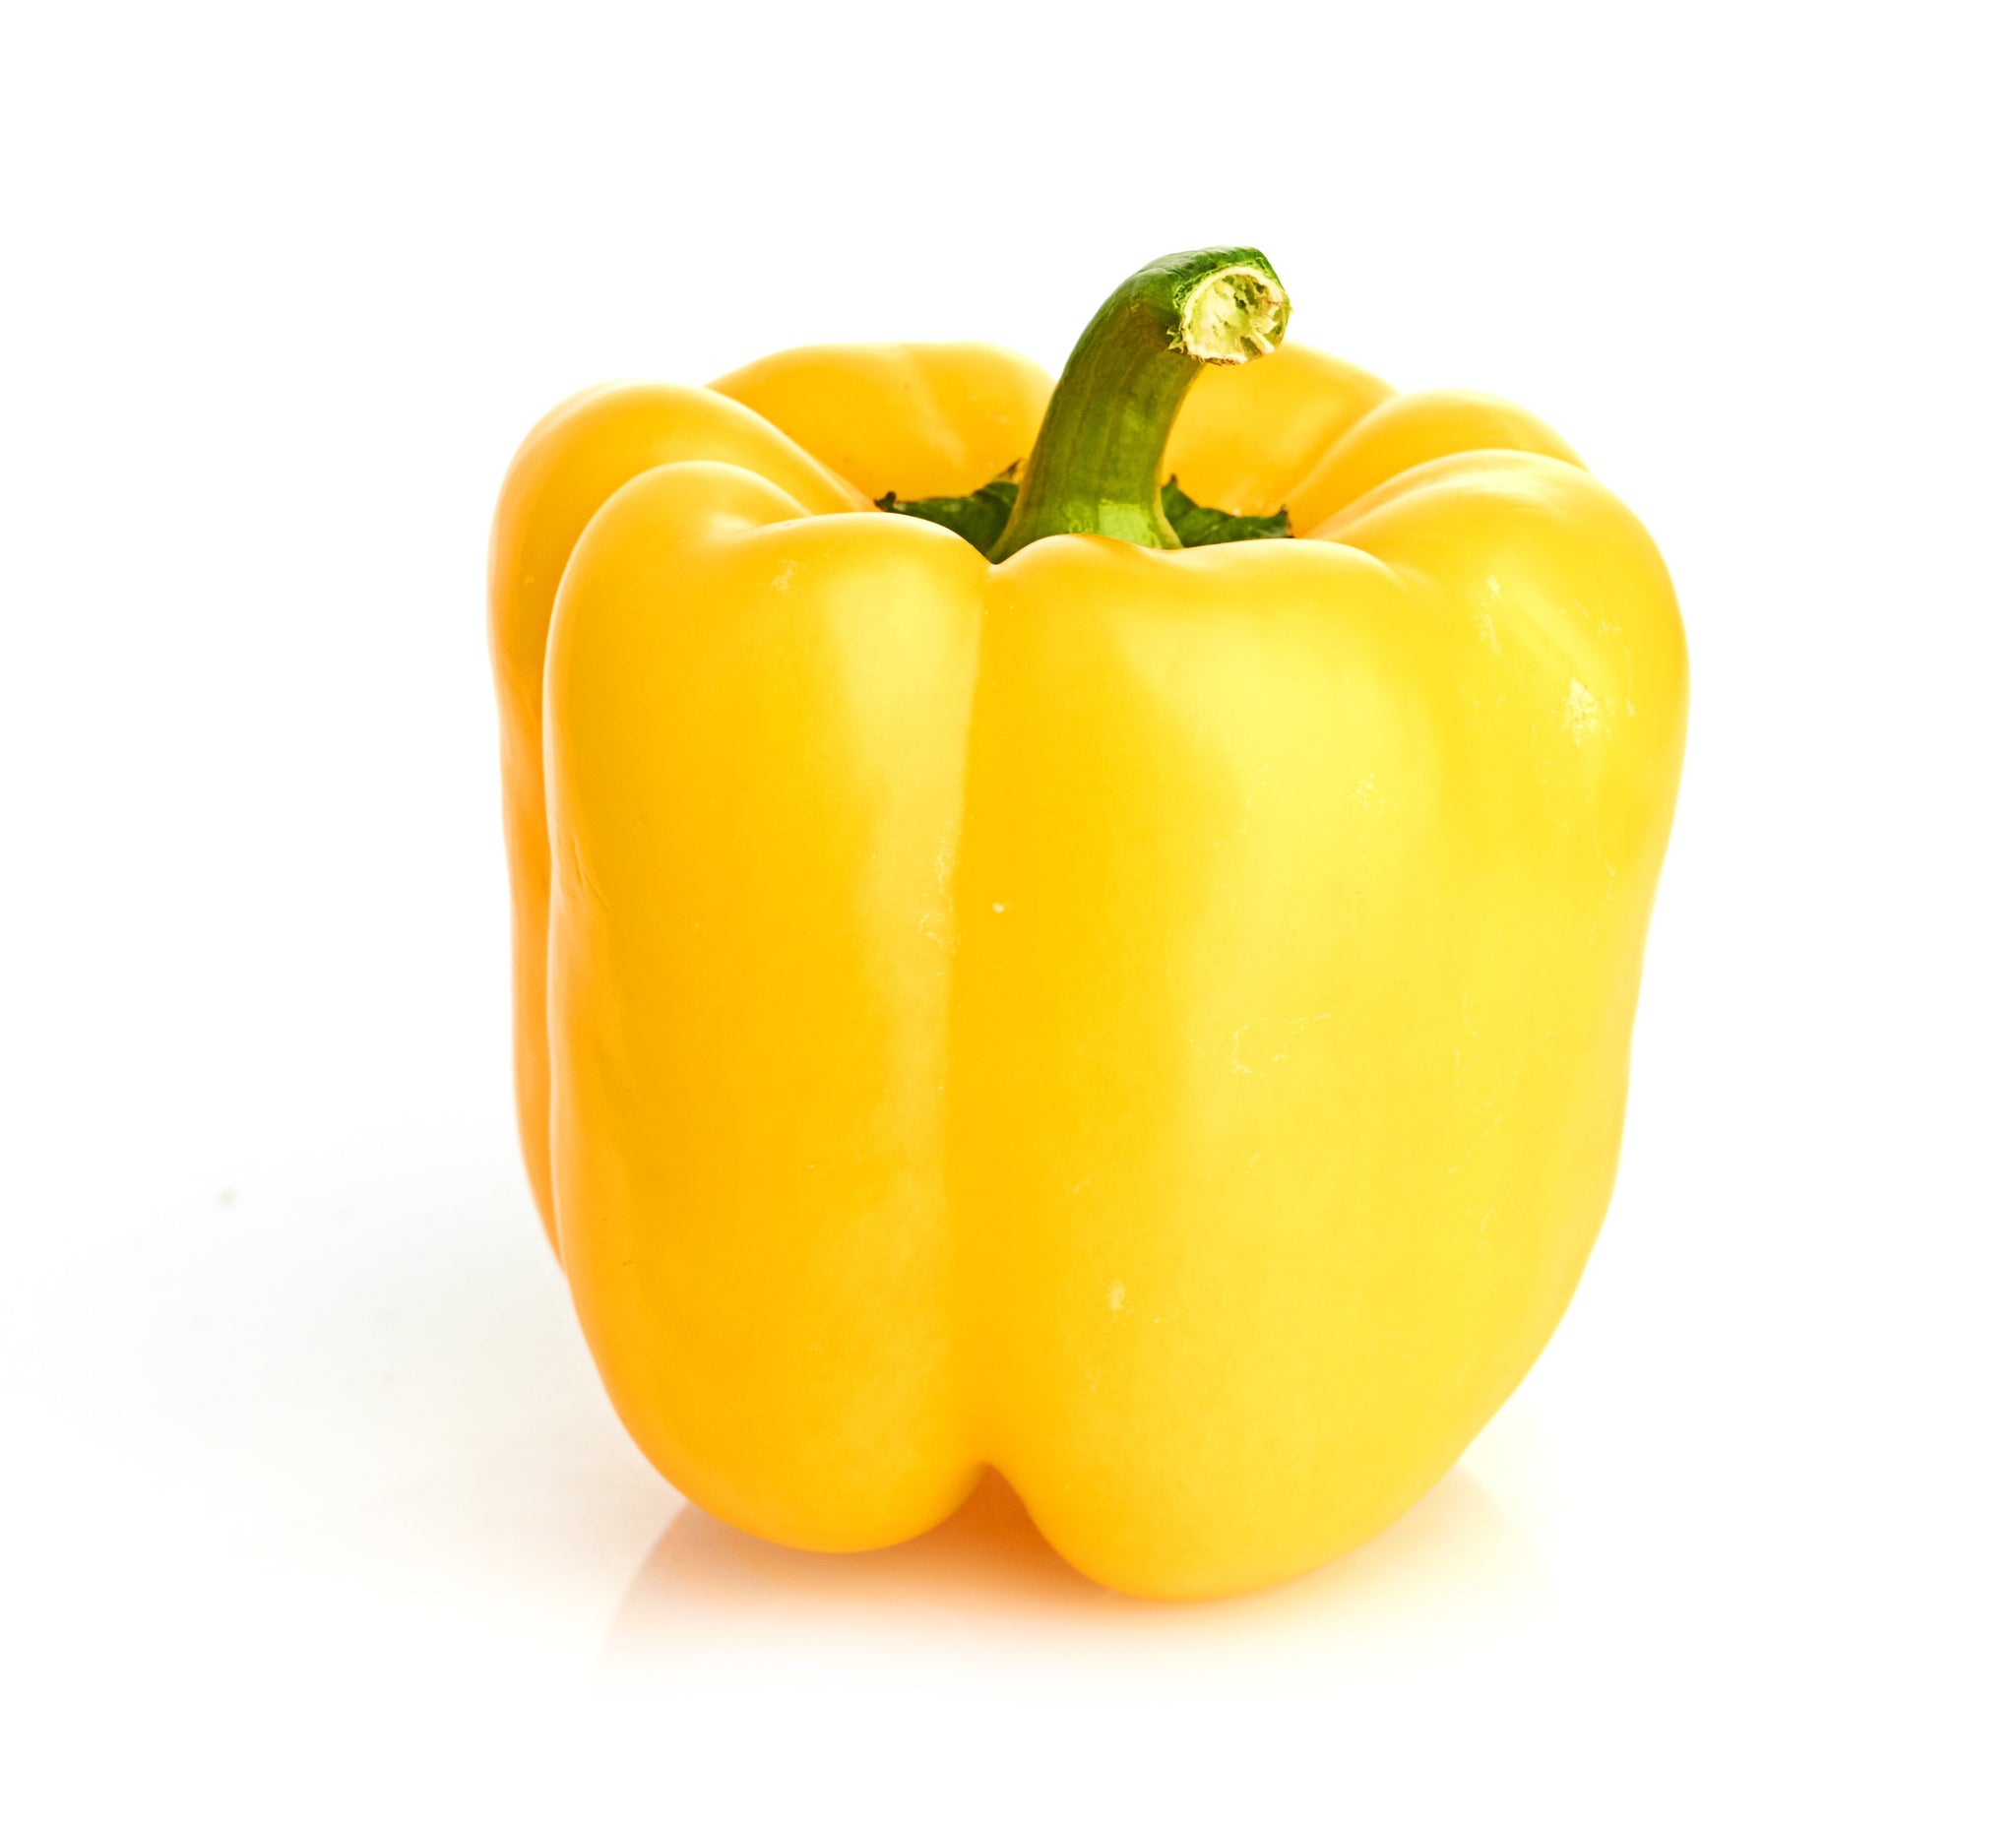 stm>Yellow Pepper per kg, 2.20lbs